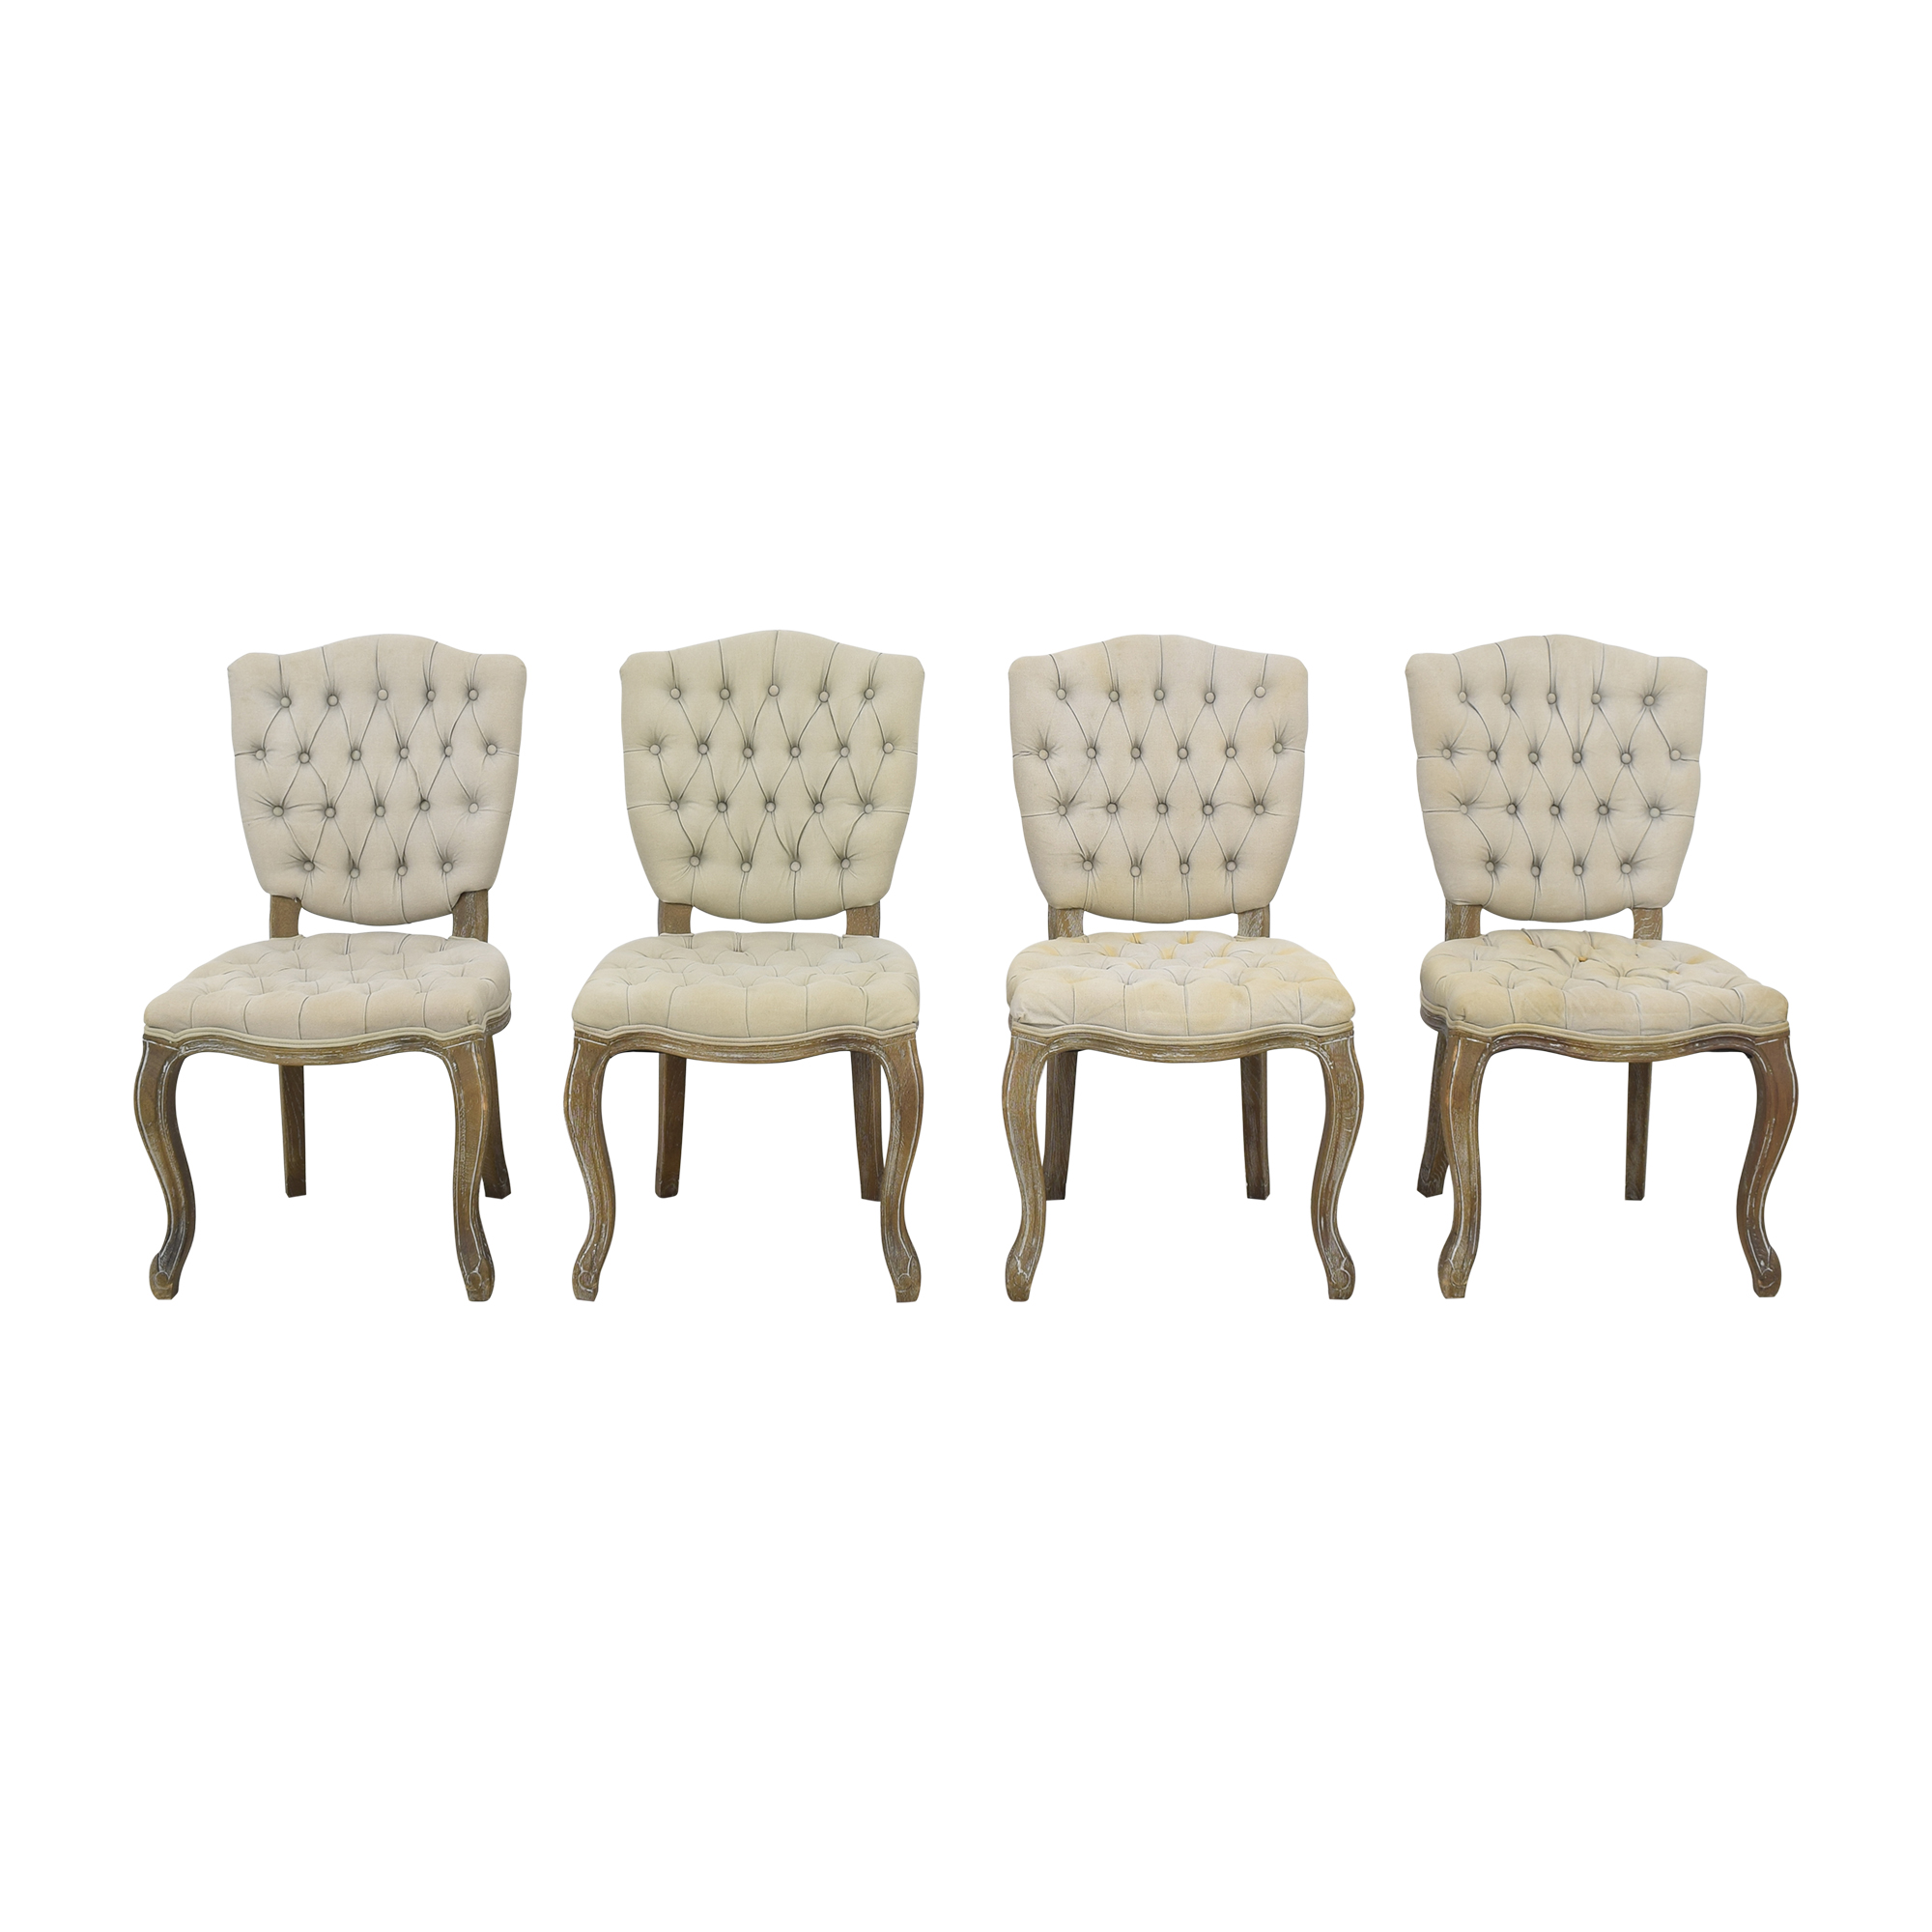 Arhaus Arhaus Country French Tufted Dining Chairs used